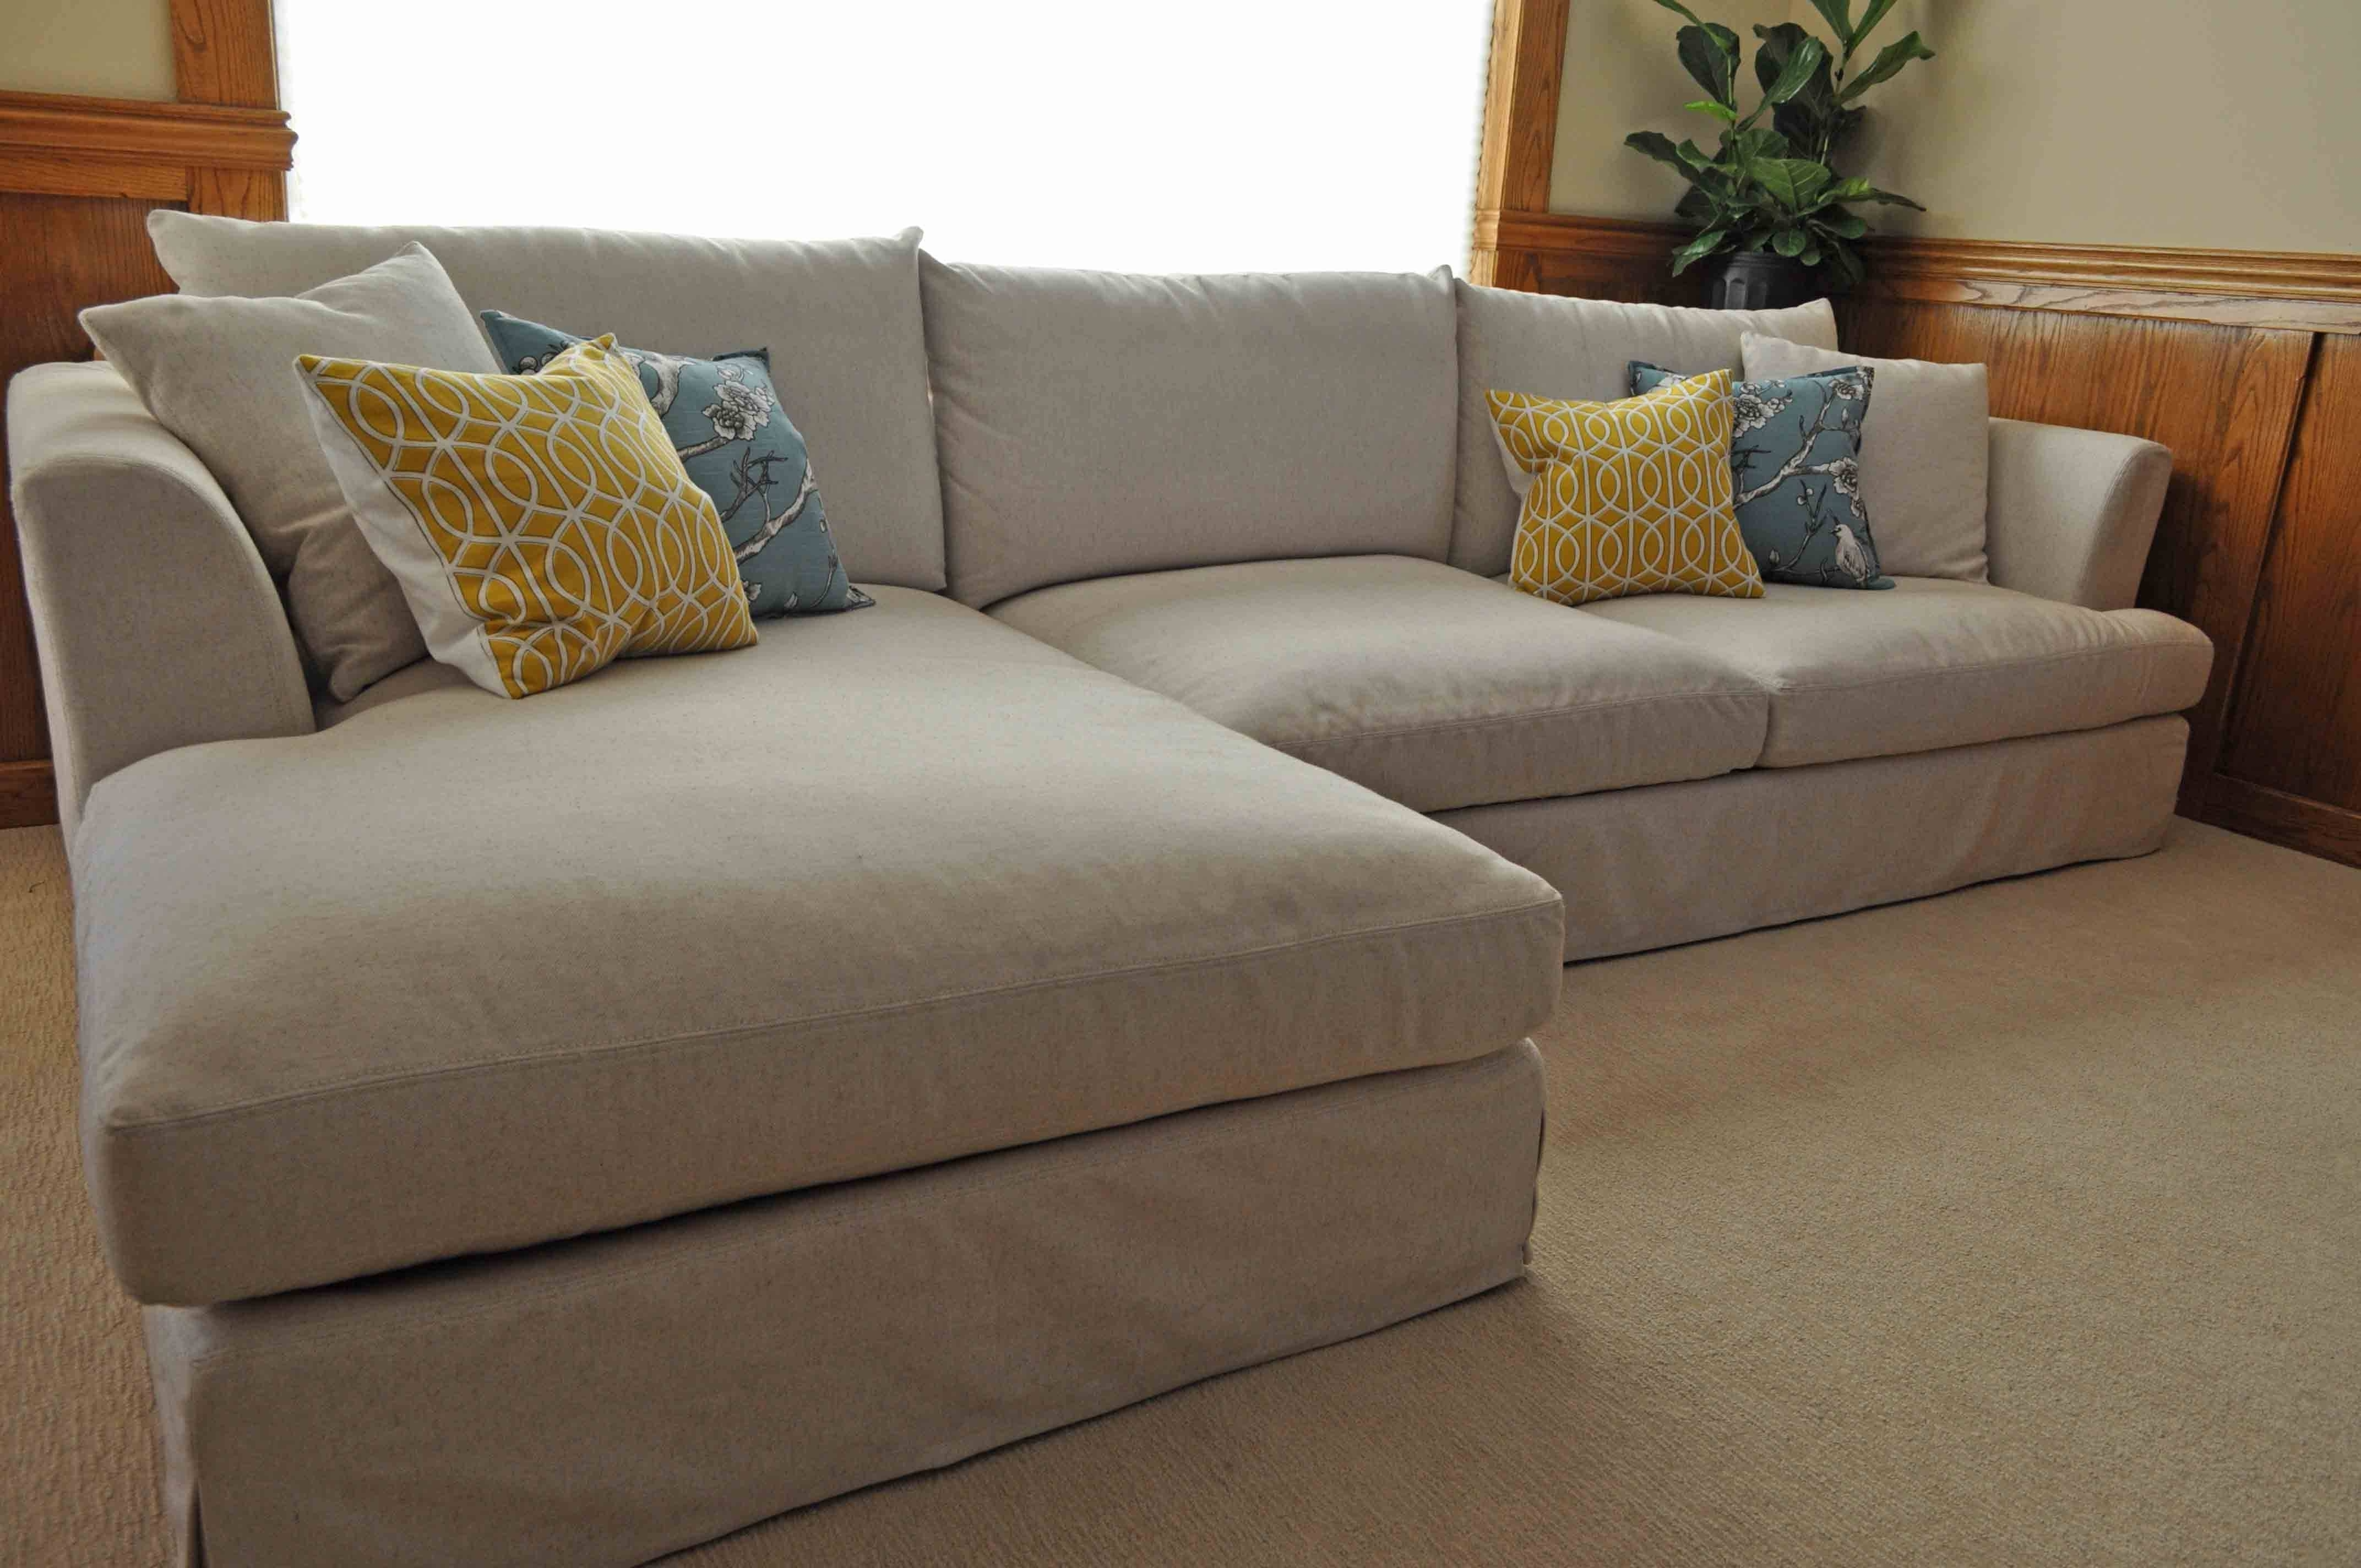 Roselawnlutheran Inside Austin With Most Up To Date Plush Sectional Sofas (View 9 of 15)